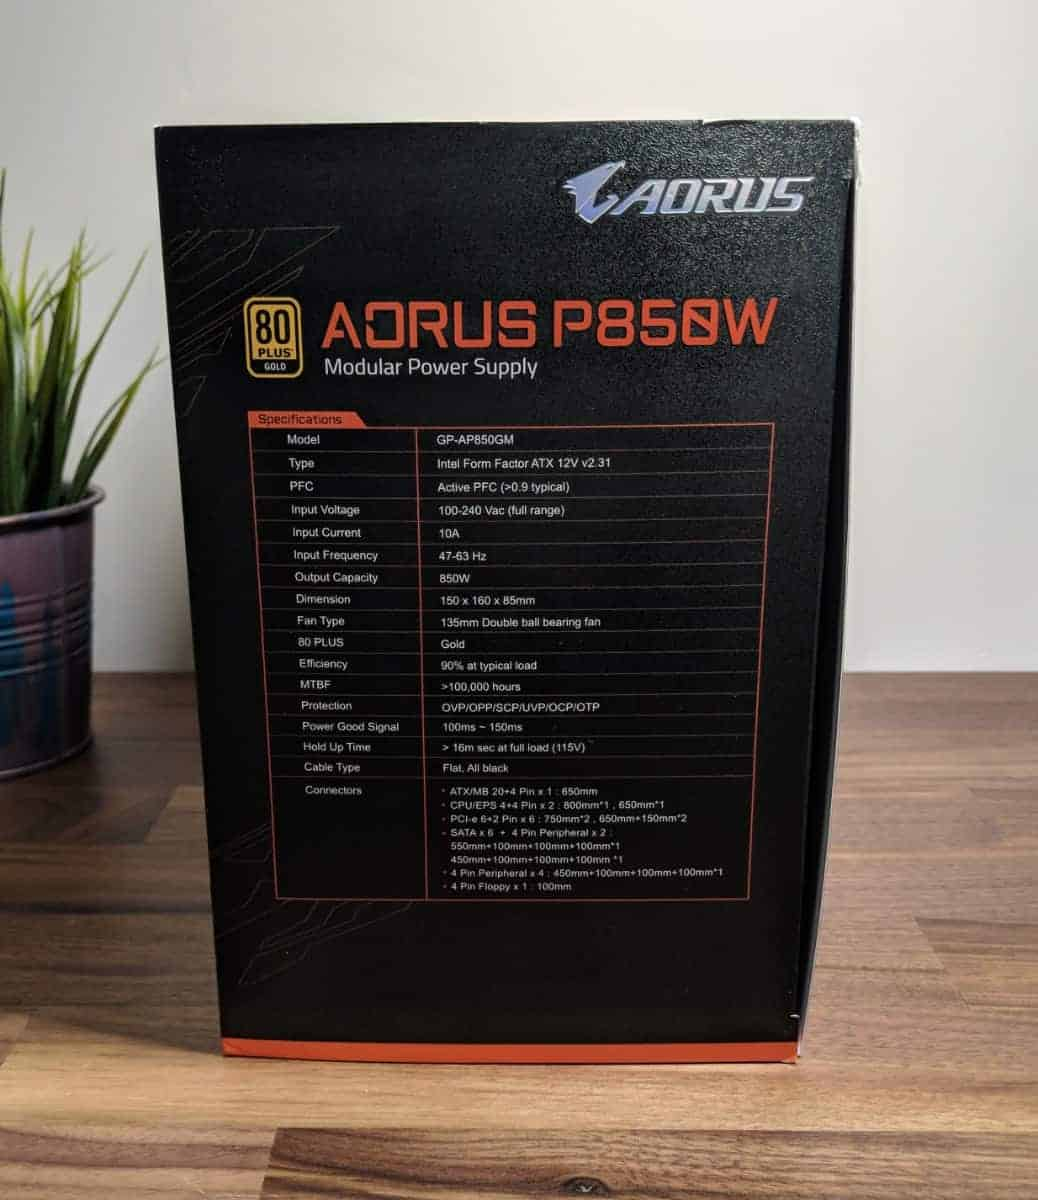 Aorus-P850w-PSU-Photos-11 AORUS P850W 80+ Gold PSU